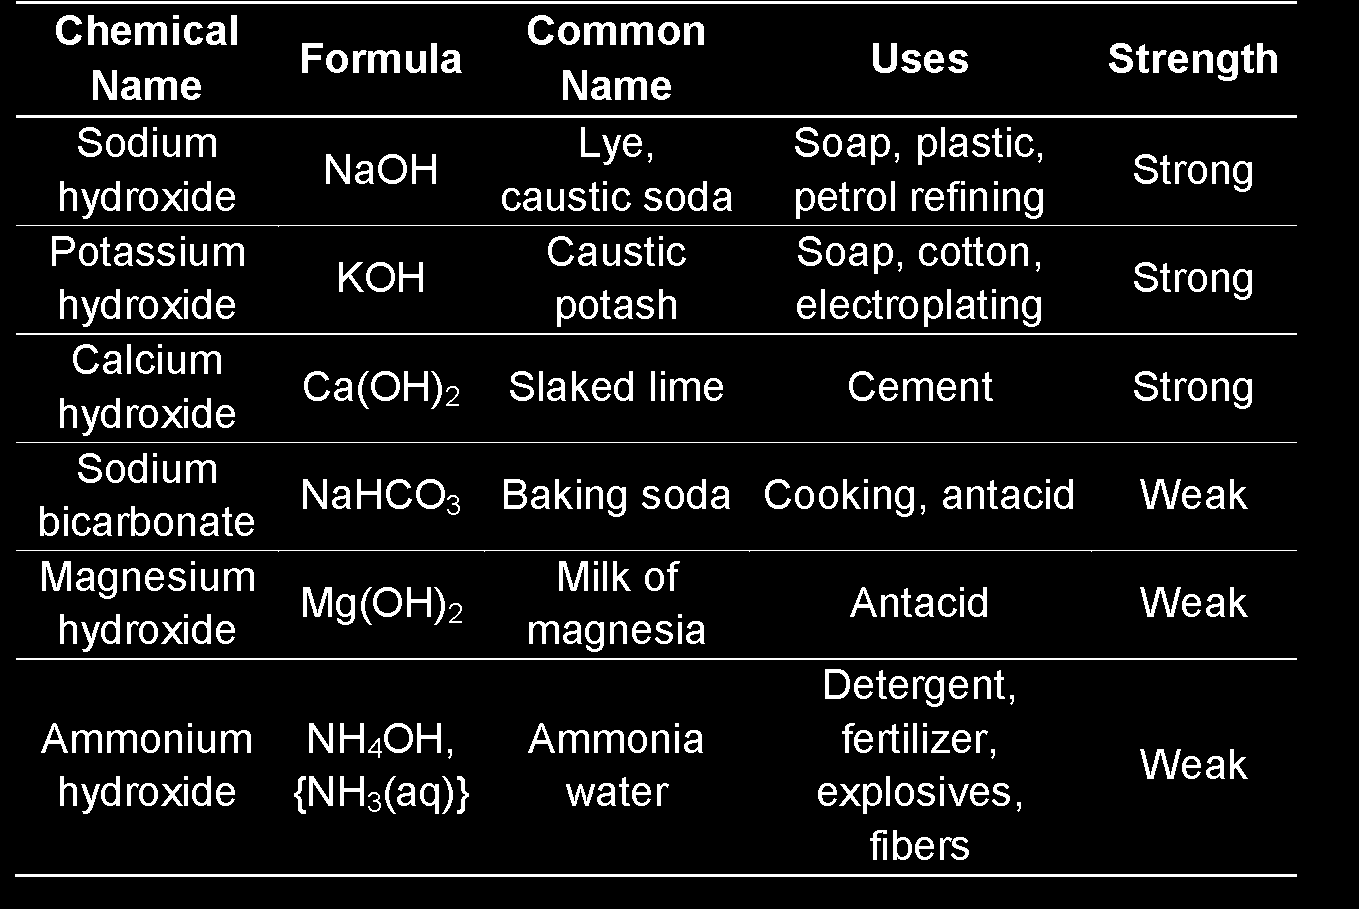 A c i d s a n d B a s e s C h 1 5 P a g e 2 A few common acids, their uses